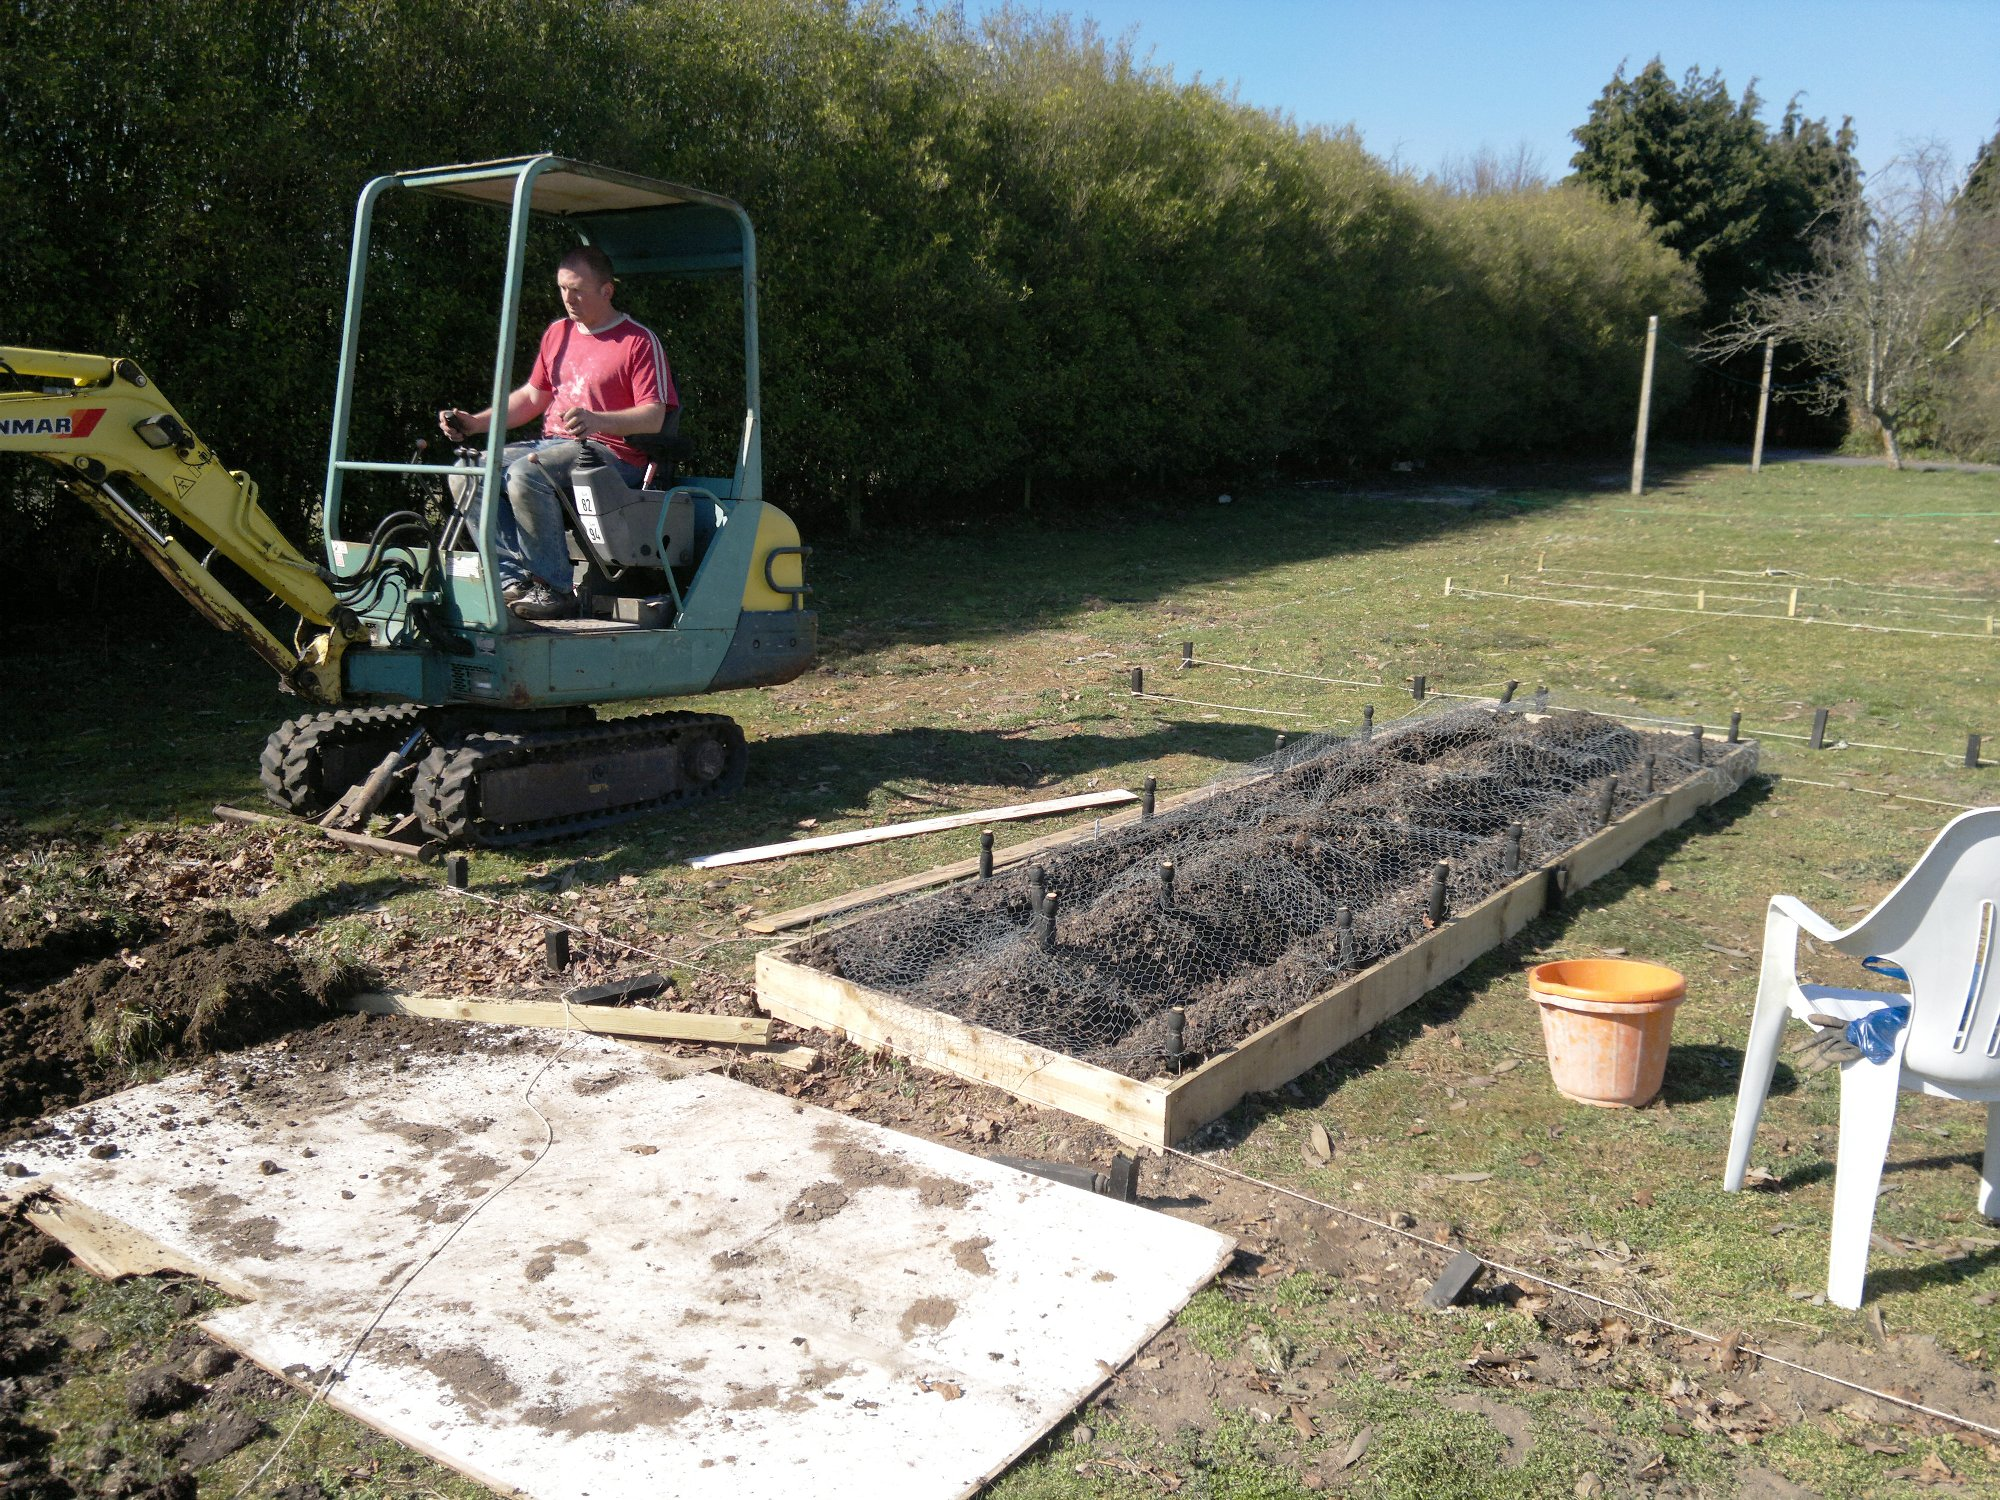 Seth having fun with the big boy's toys; first potato bed in the foreground, protected with wire mesh from the rabbits